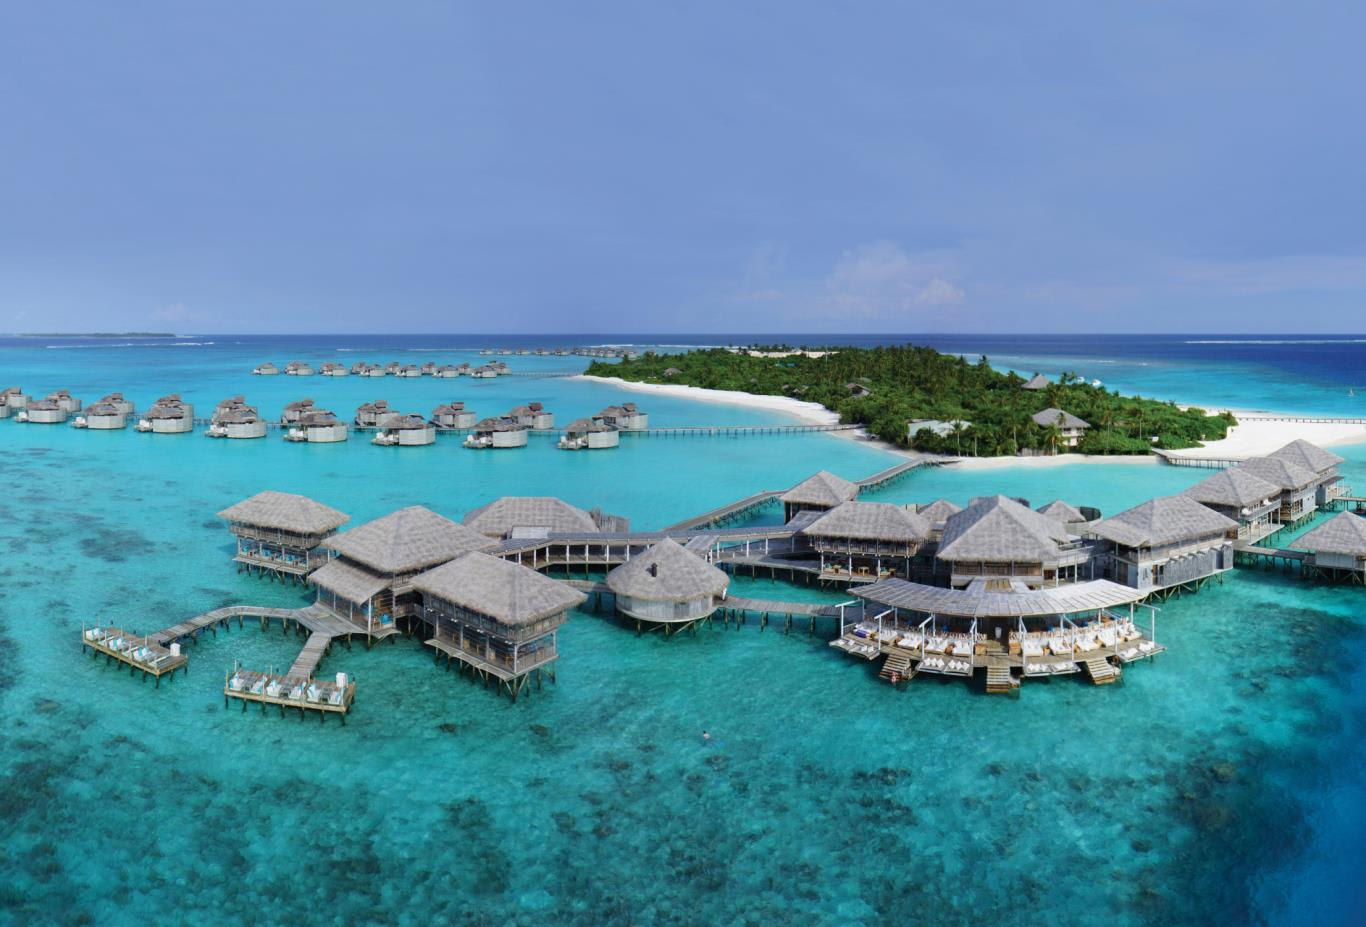 Six Senses Laamu panorama